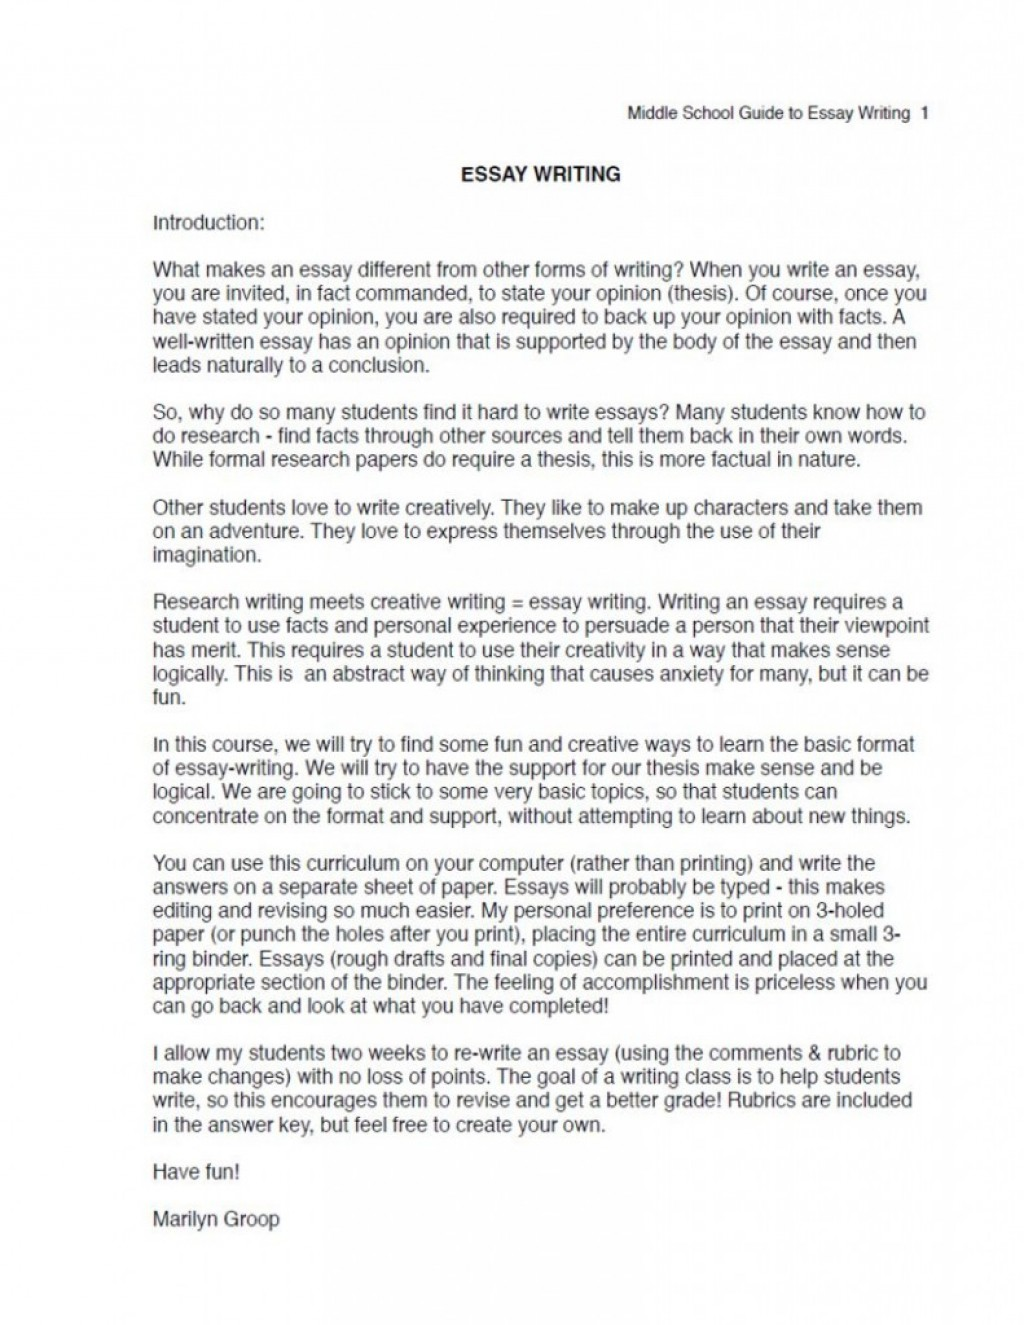 007 Essay Example Ms Excerpt 791x1024cb Compare And Contrast Cultures Stirring Topics Large